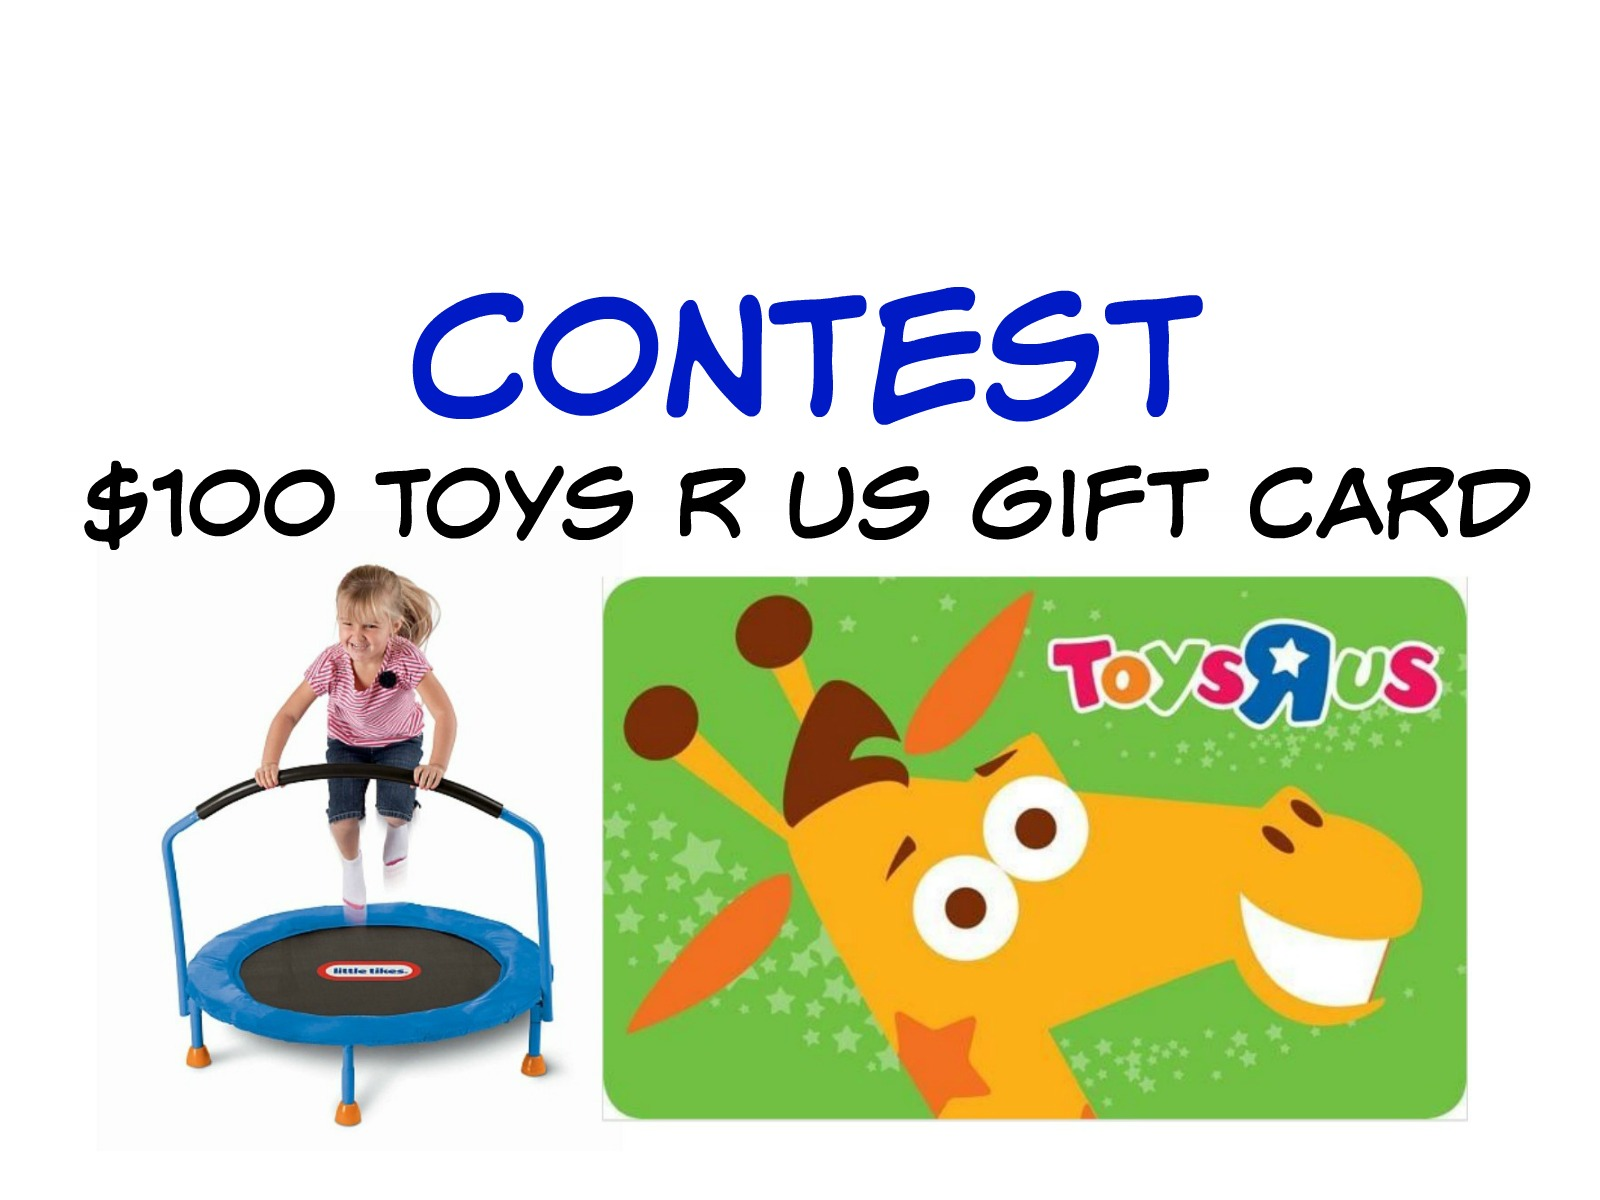 Contest: $100 TOYS R US Gift Card